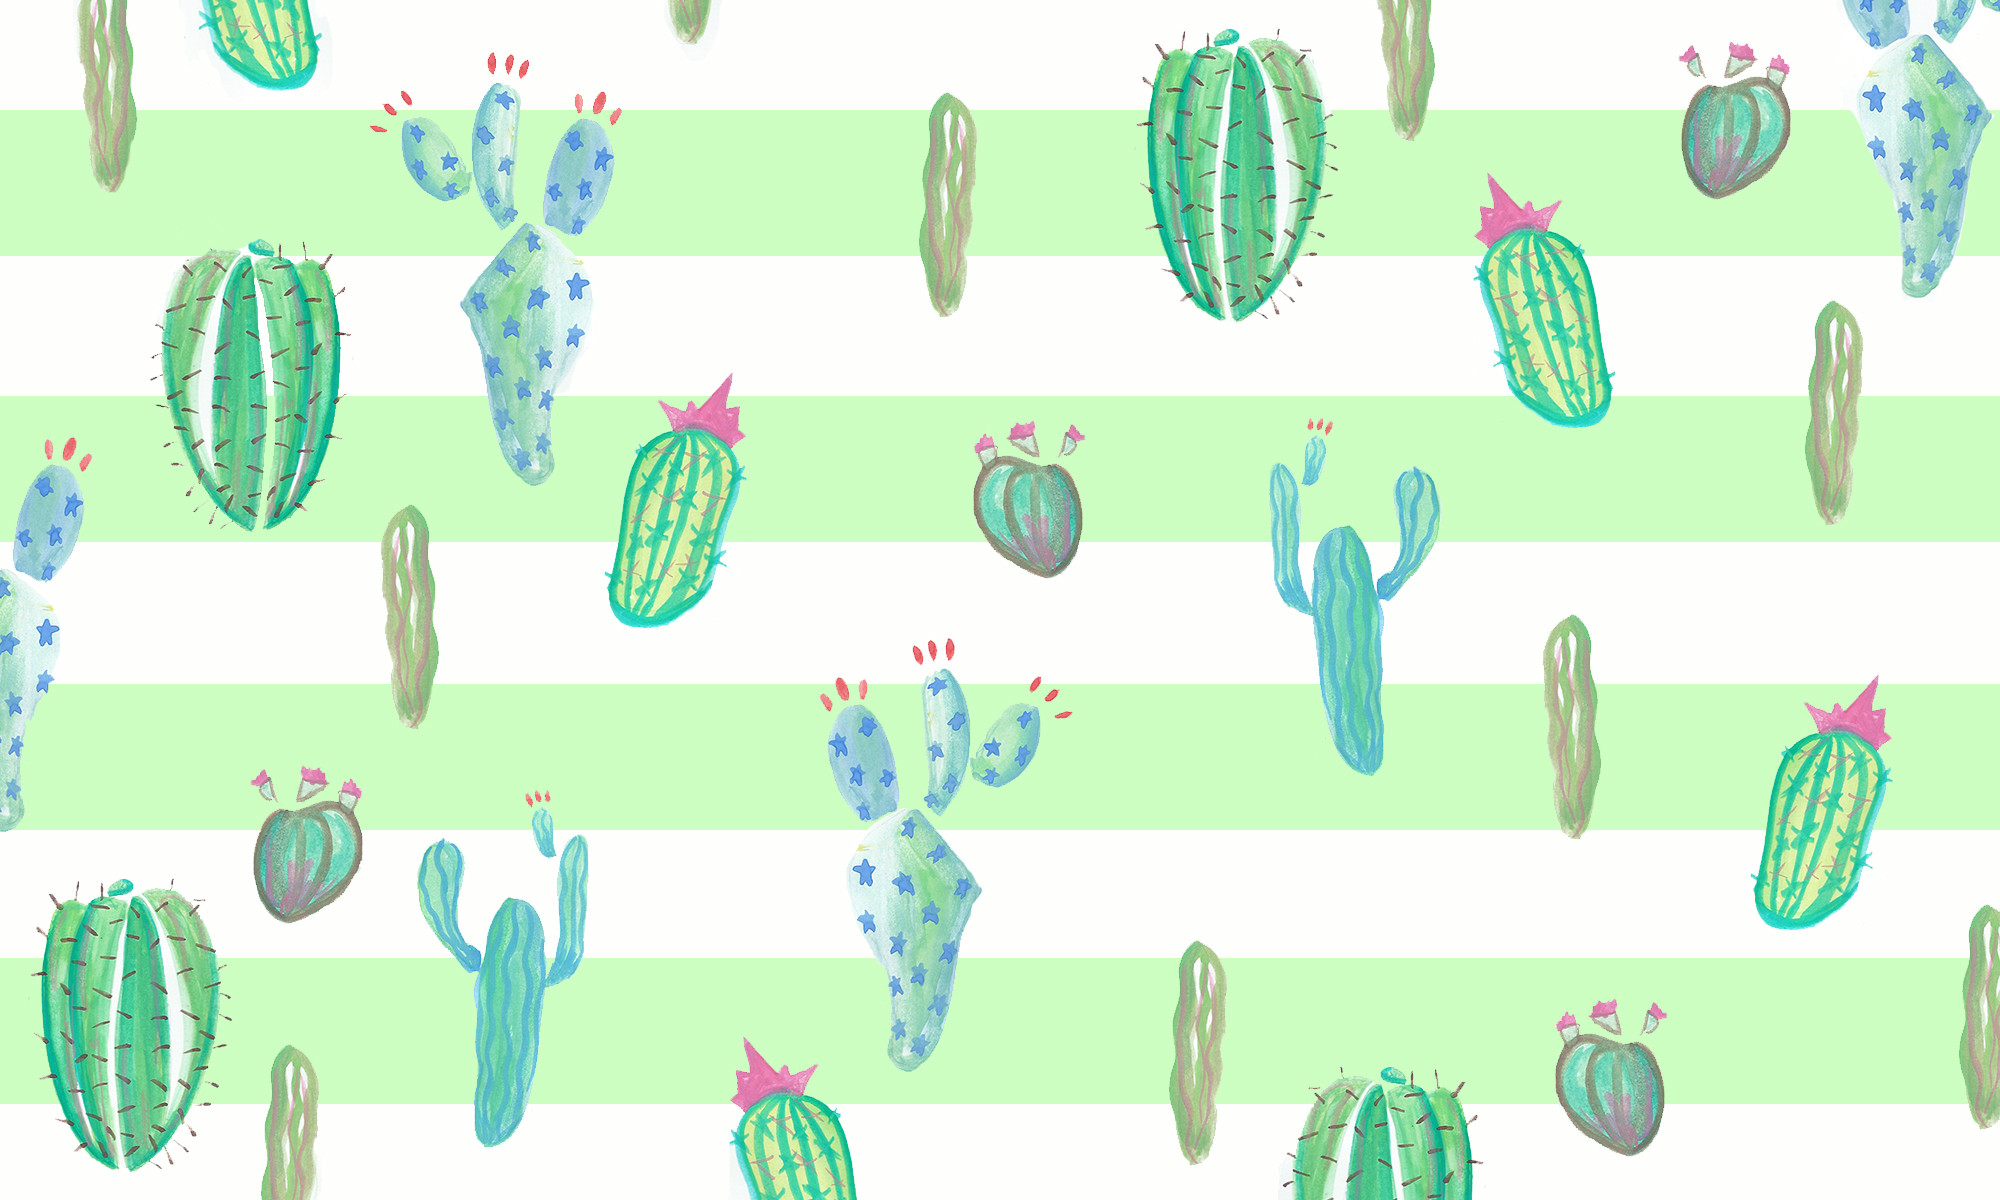 Res: 2000x1200, Cactus Wallpapers 10 - 2000 X 1200